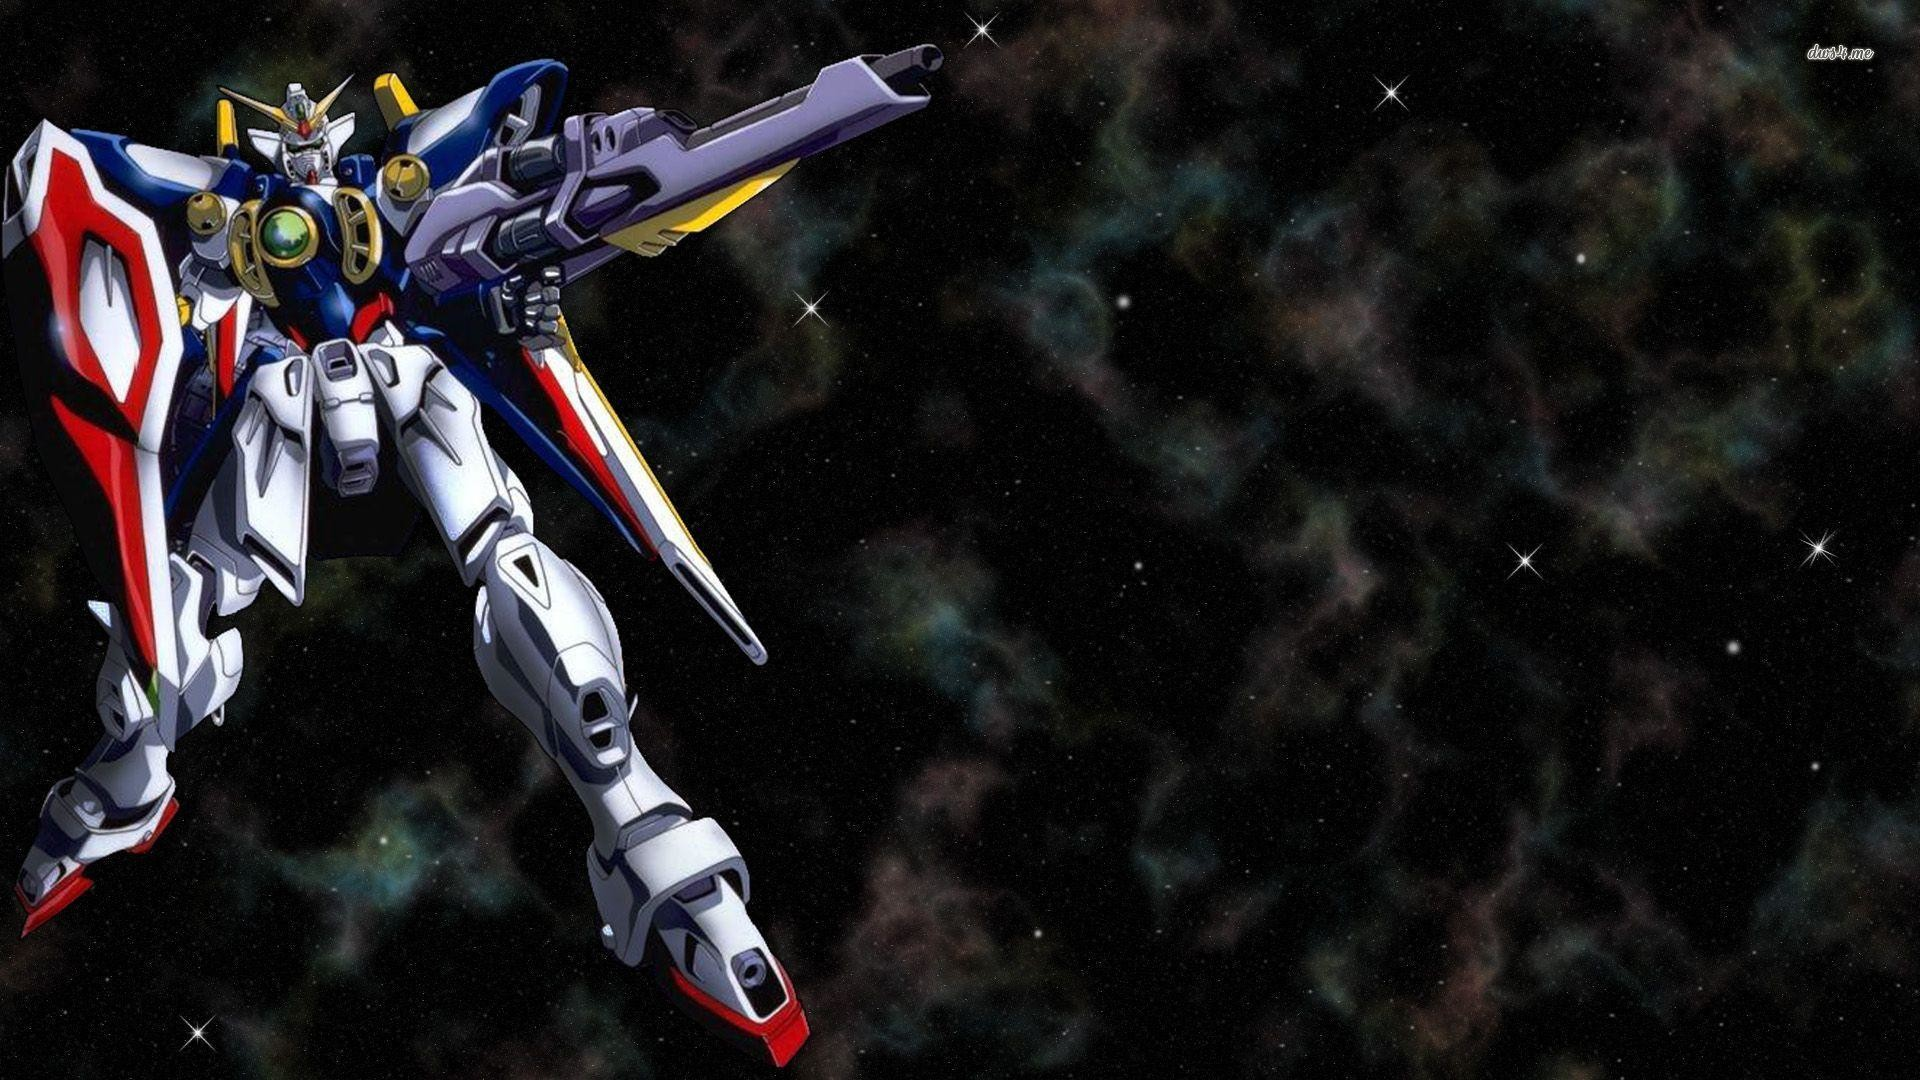 1920x1080 Wallpapers For > Gundam Wing Zero Wallpapers